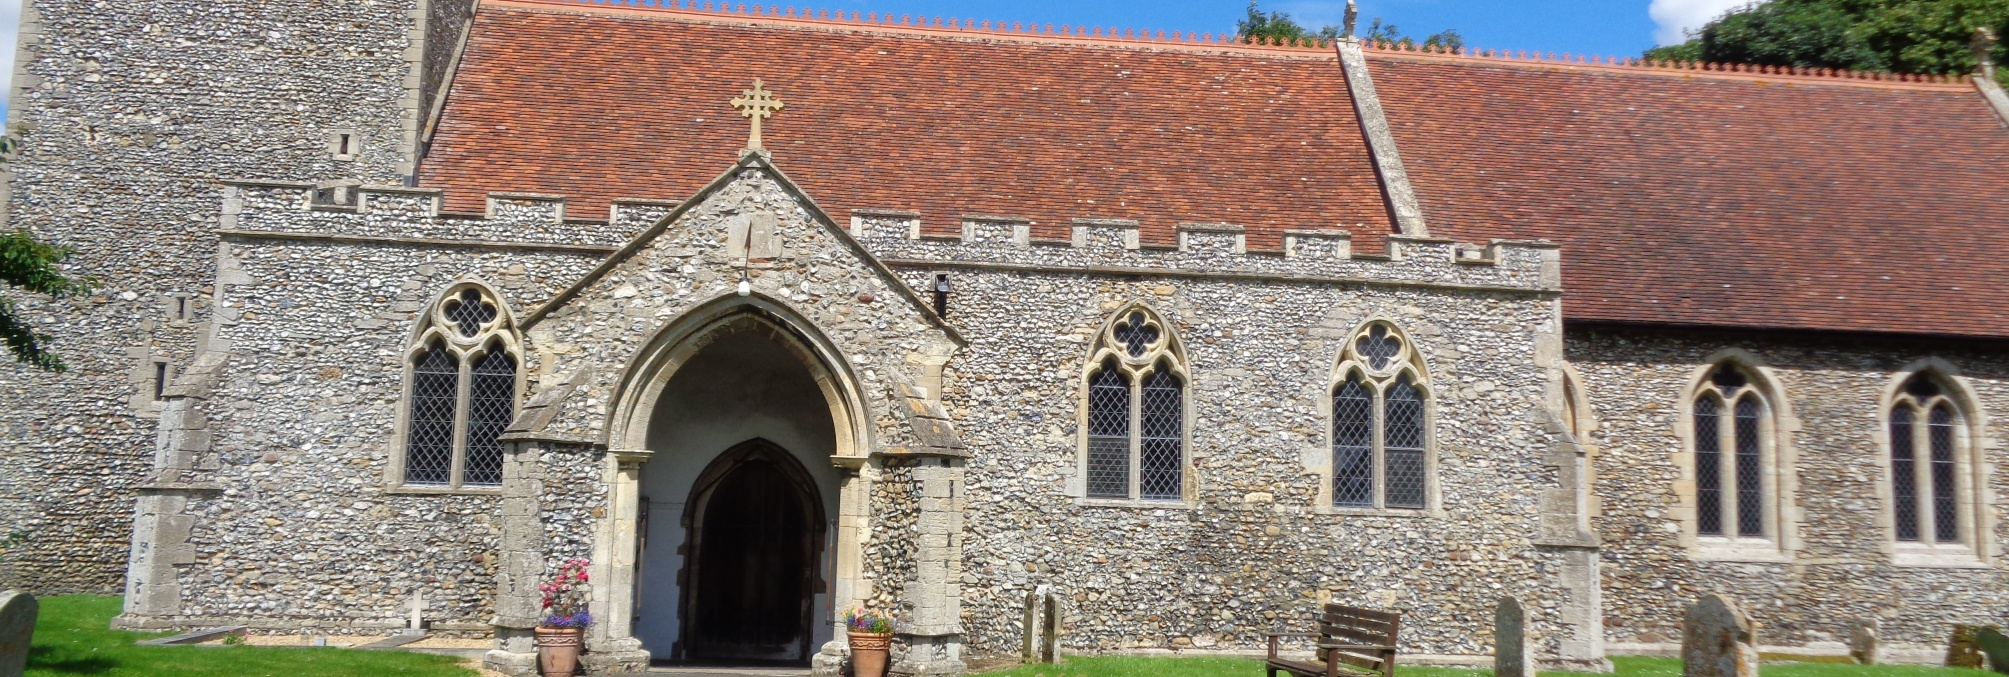 Churches of Barrow, Denham, Risby, Great and Little Saxham